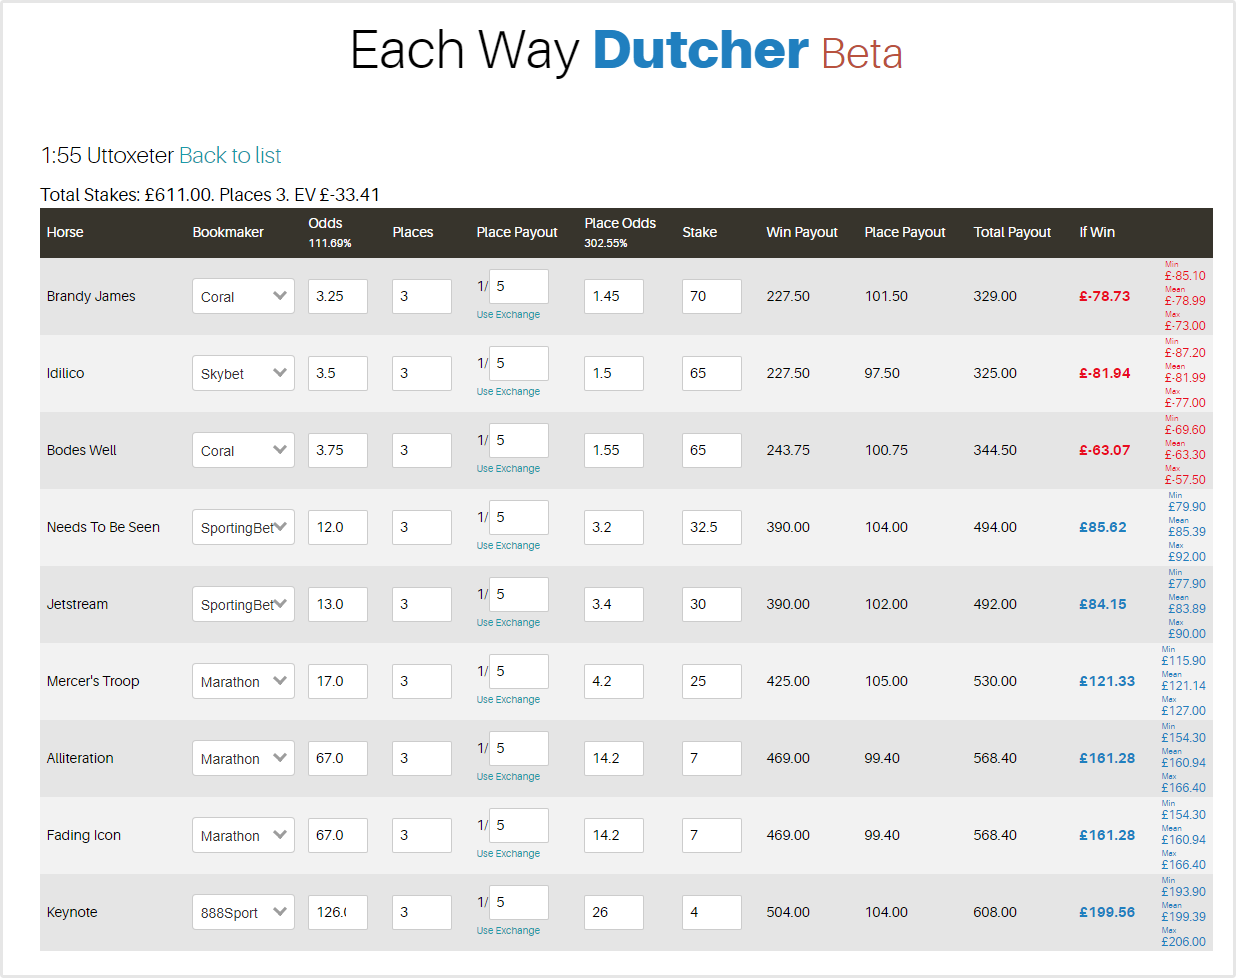 each way dutching software